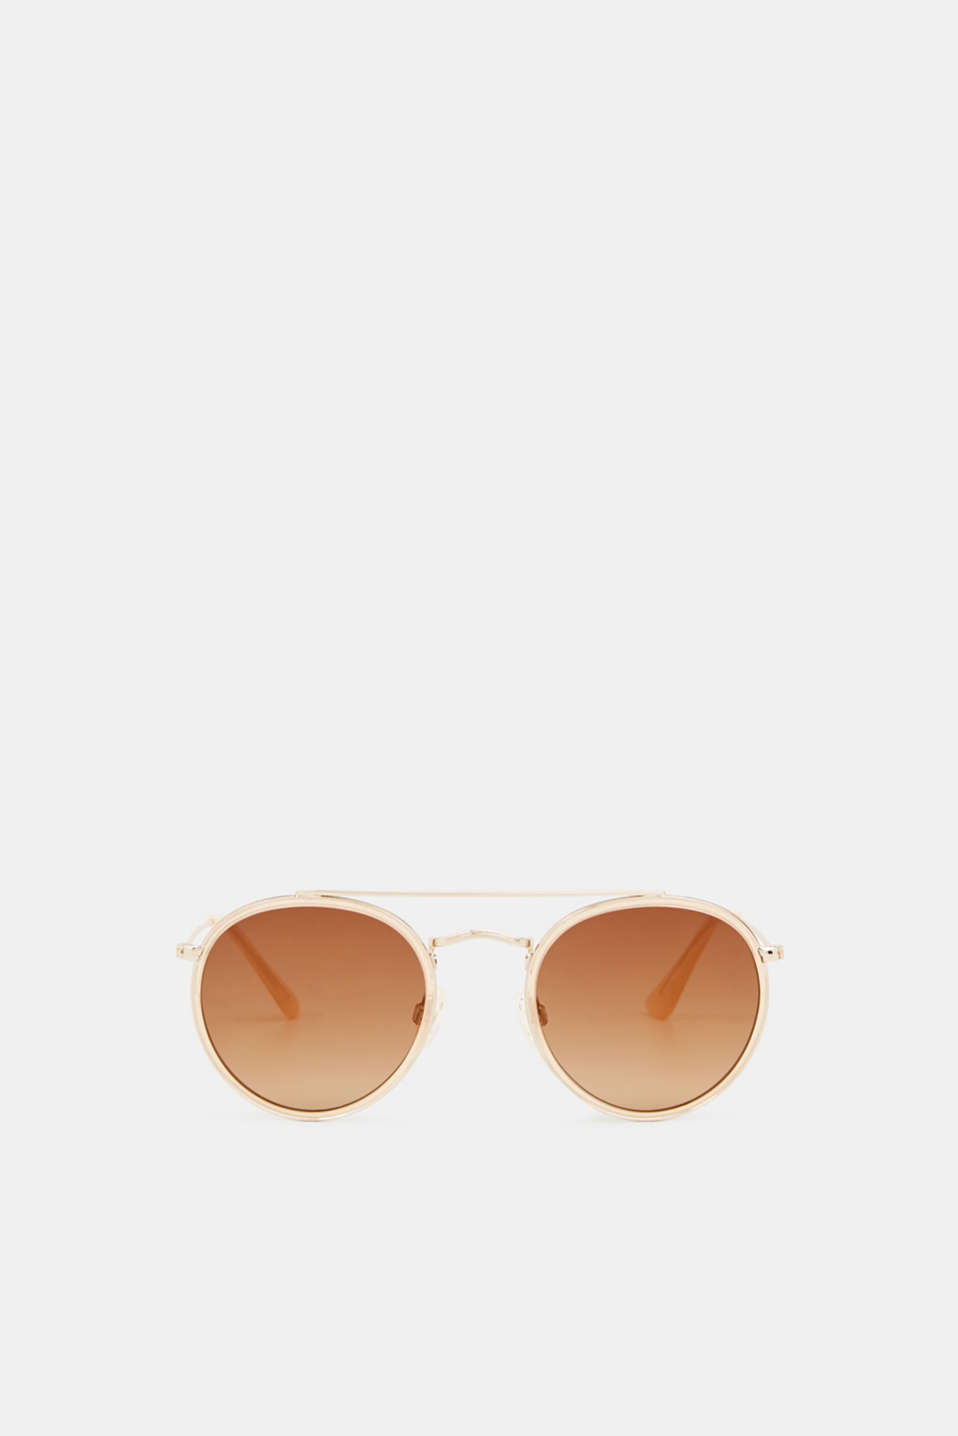 Esprit - Round sunglasses with a metal frame